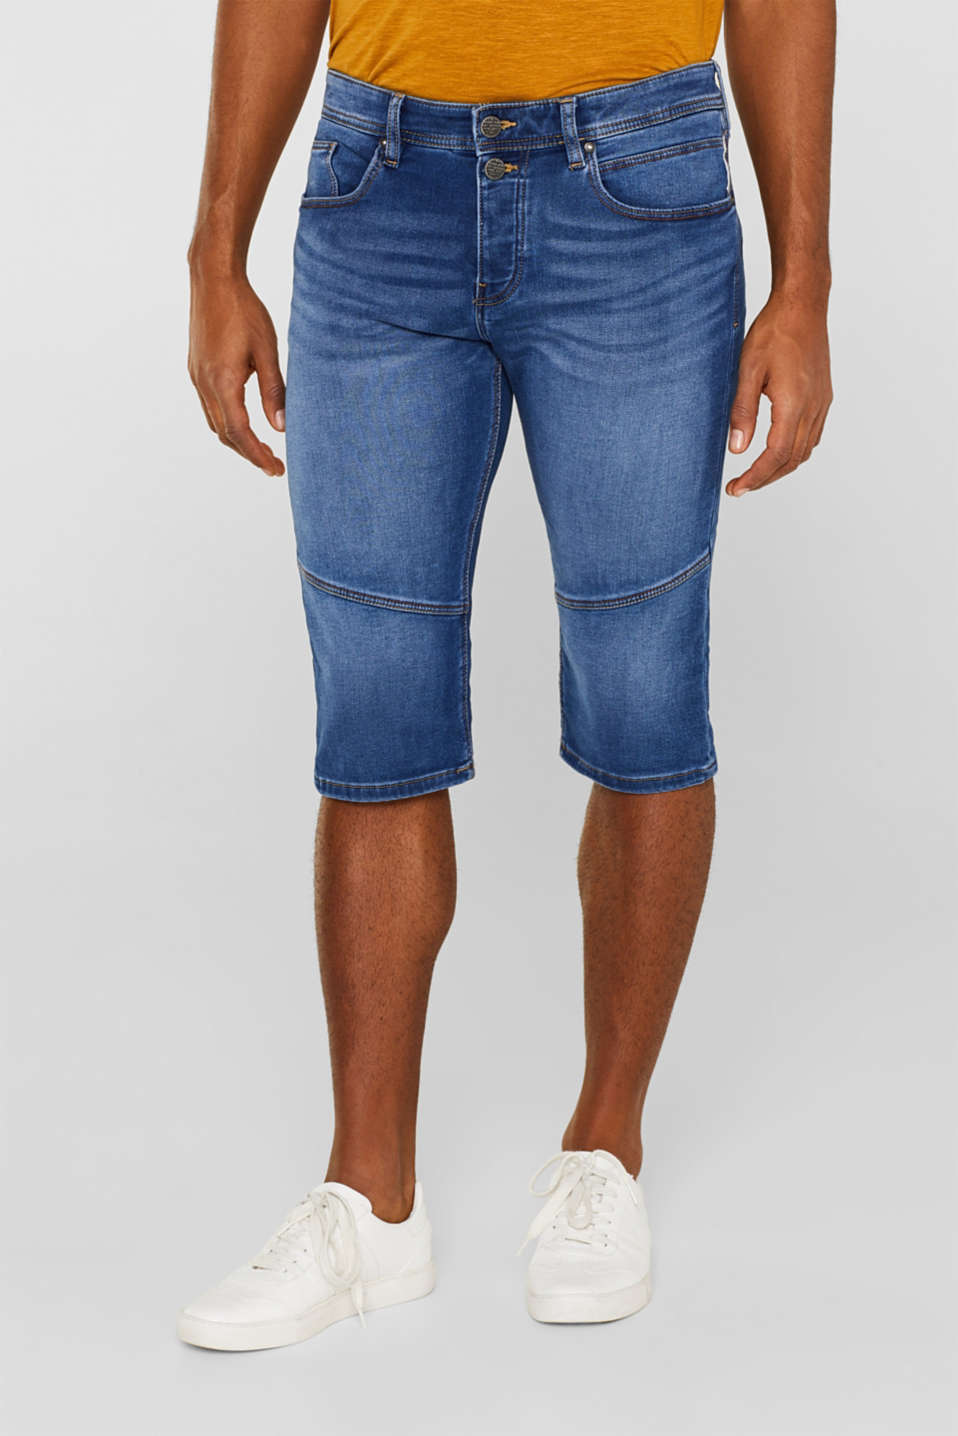 edc - Denim short van joggingstof met veel stretch